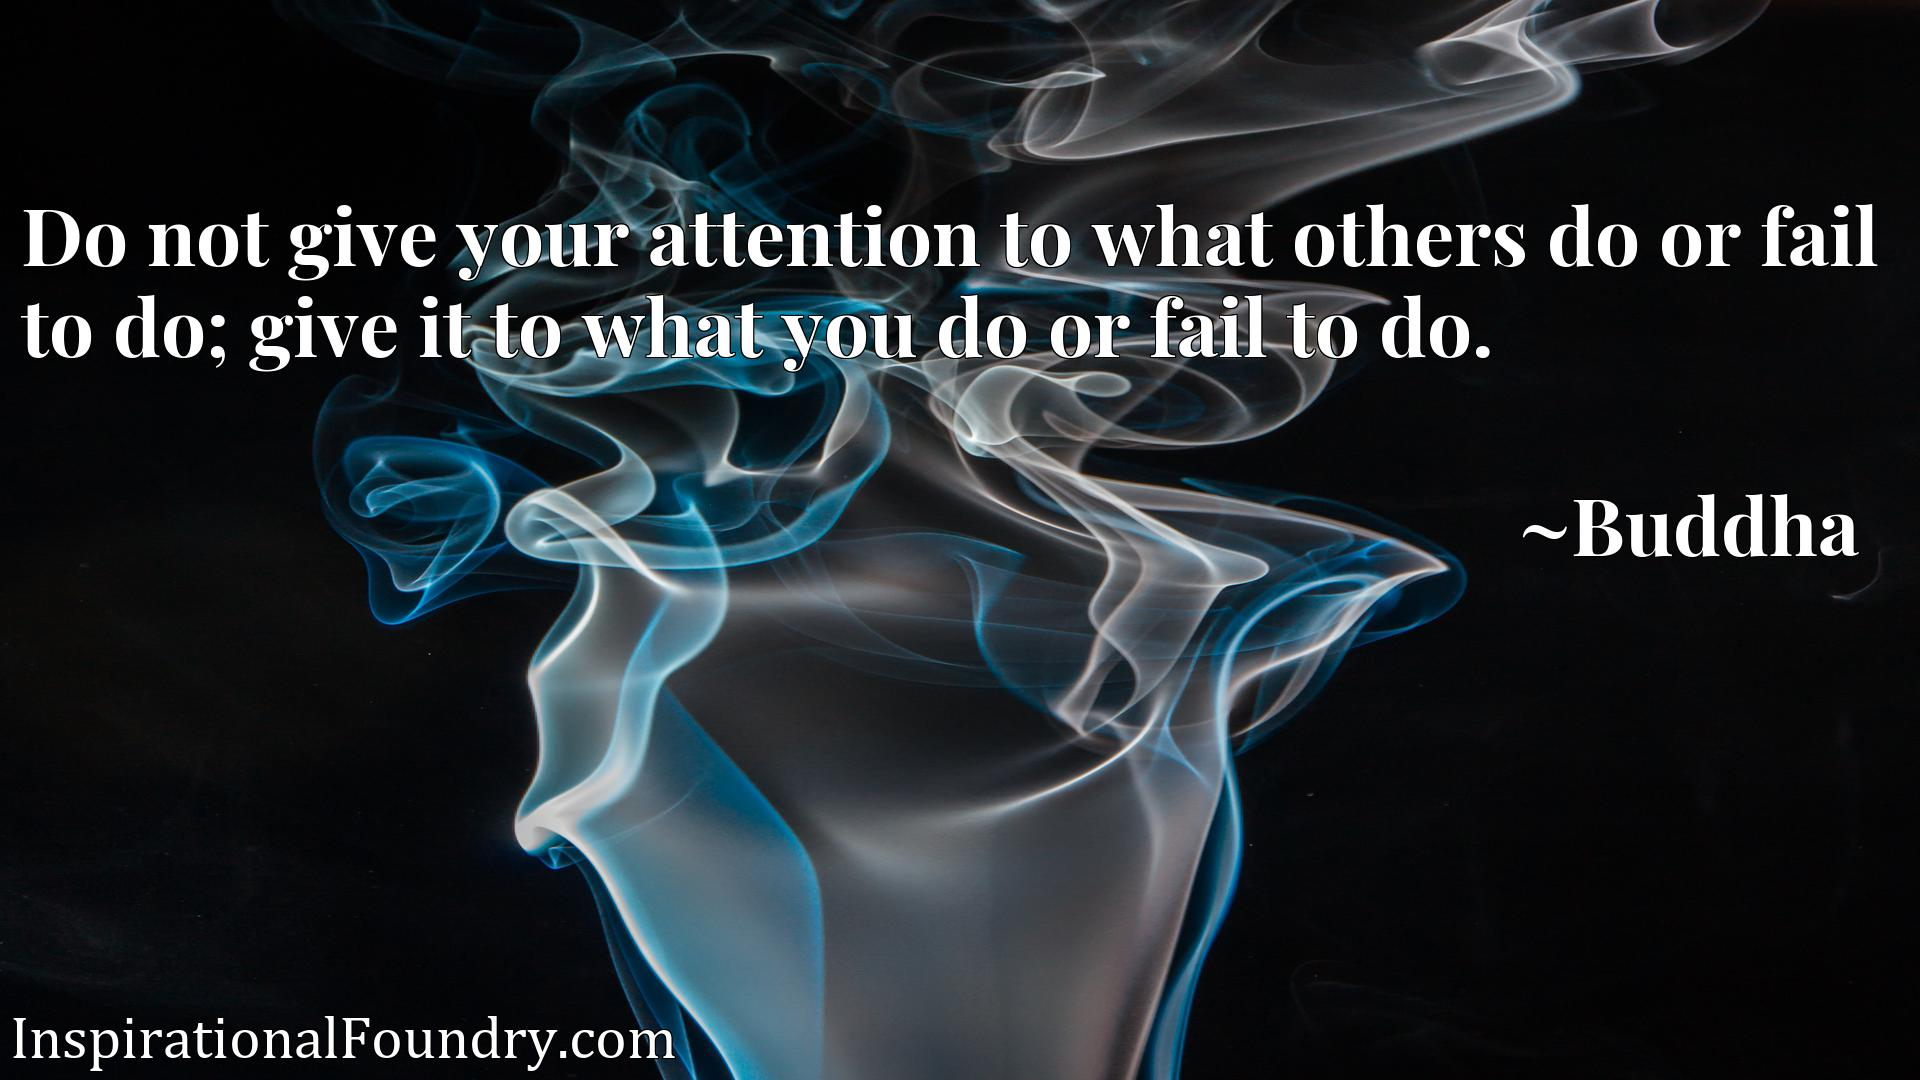 Do not give your attention to what others do or fail to do; give it to what you do or fail to do.